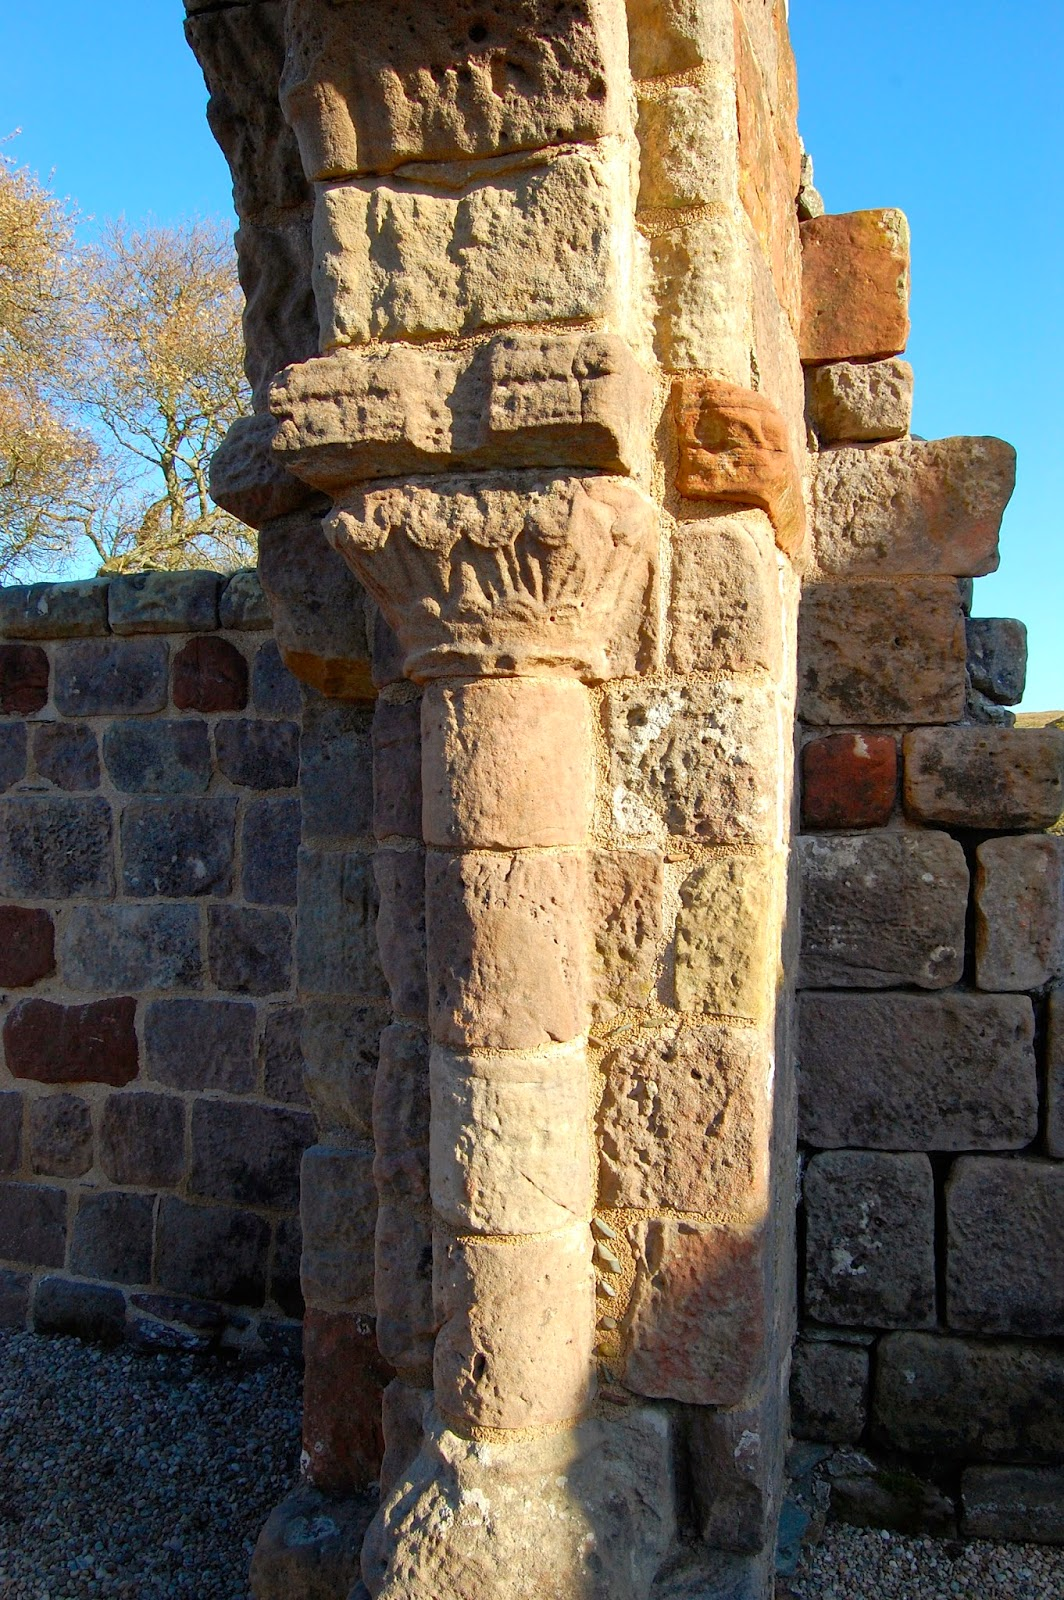 Decorative pillar in St. Blane's Church, Isle of Bute